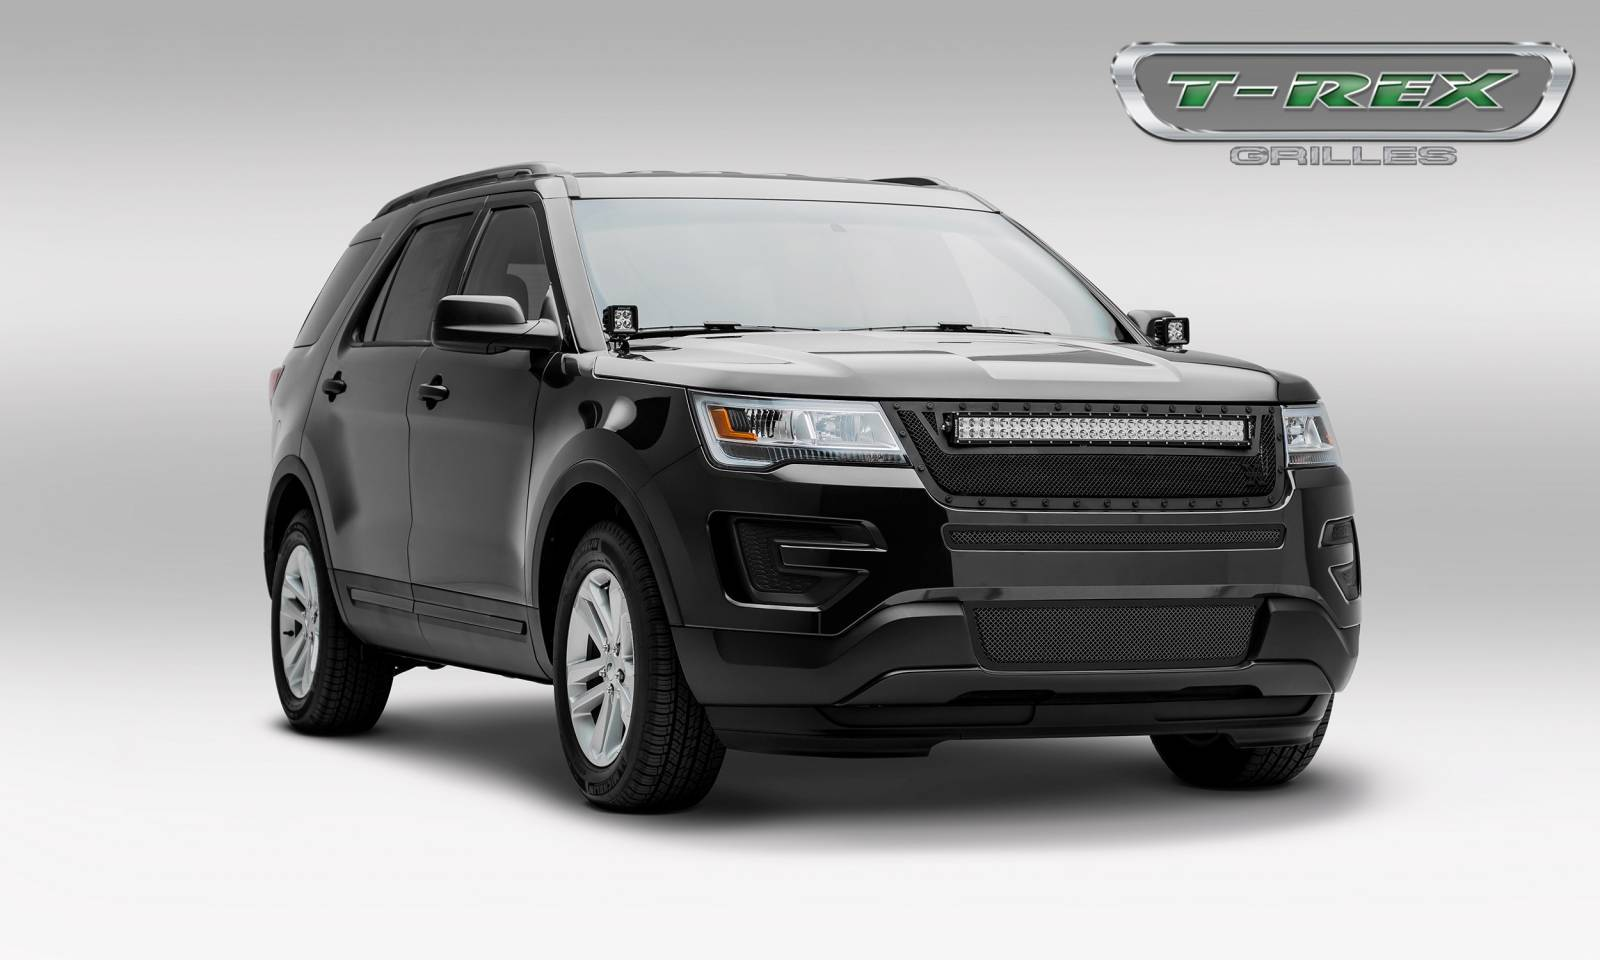 Torch series grille options for the 2016 ford explorer